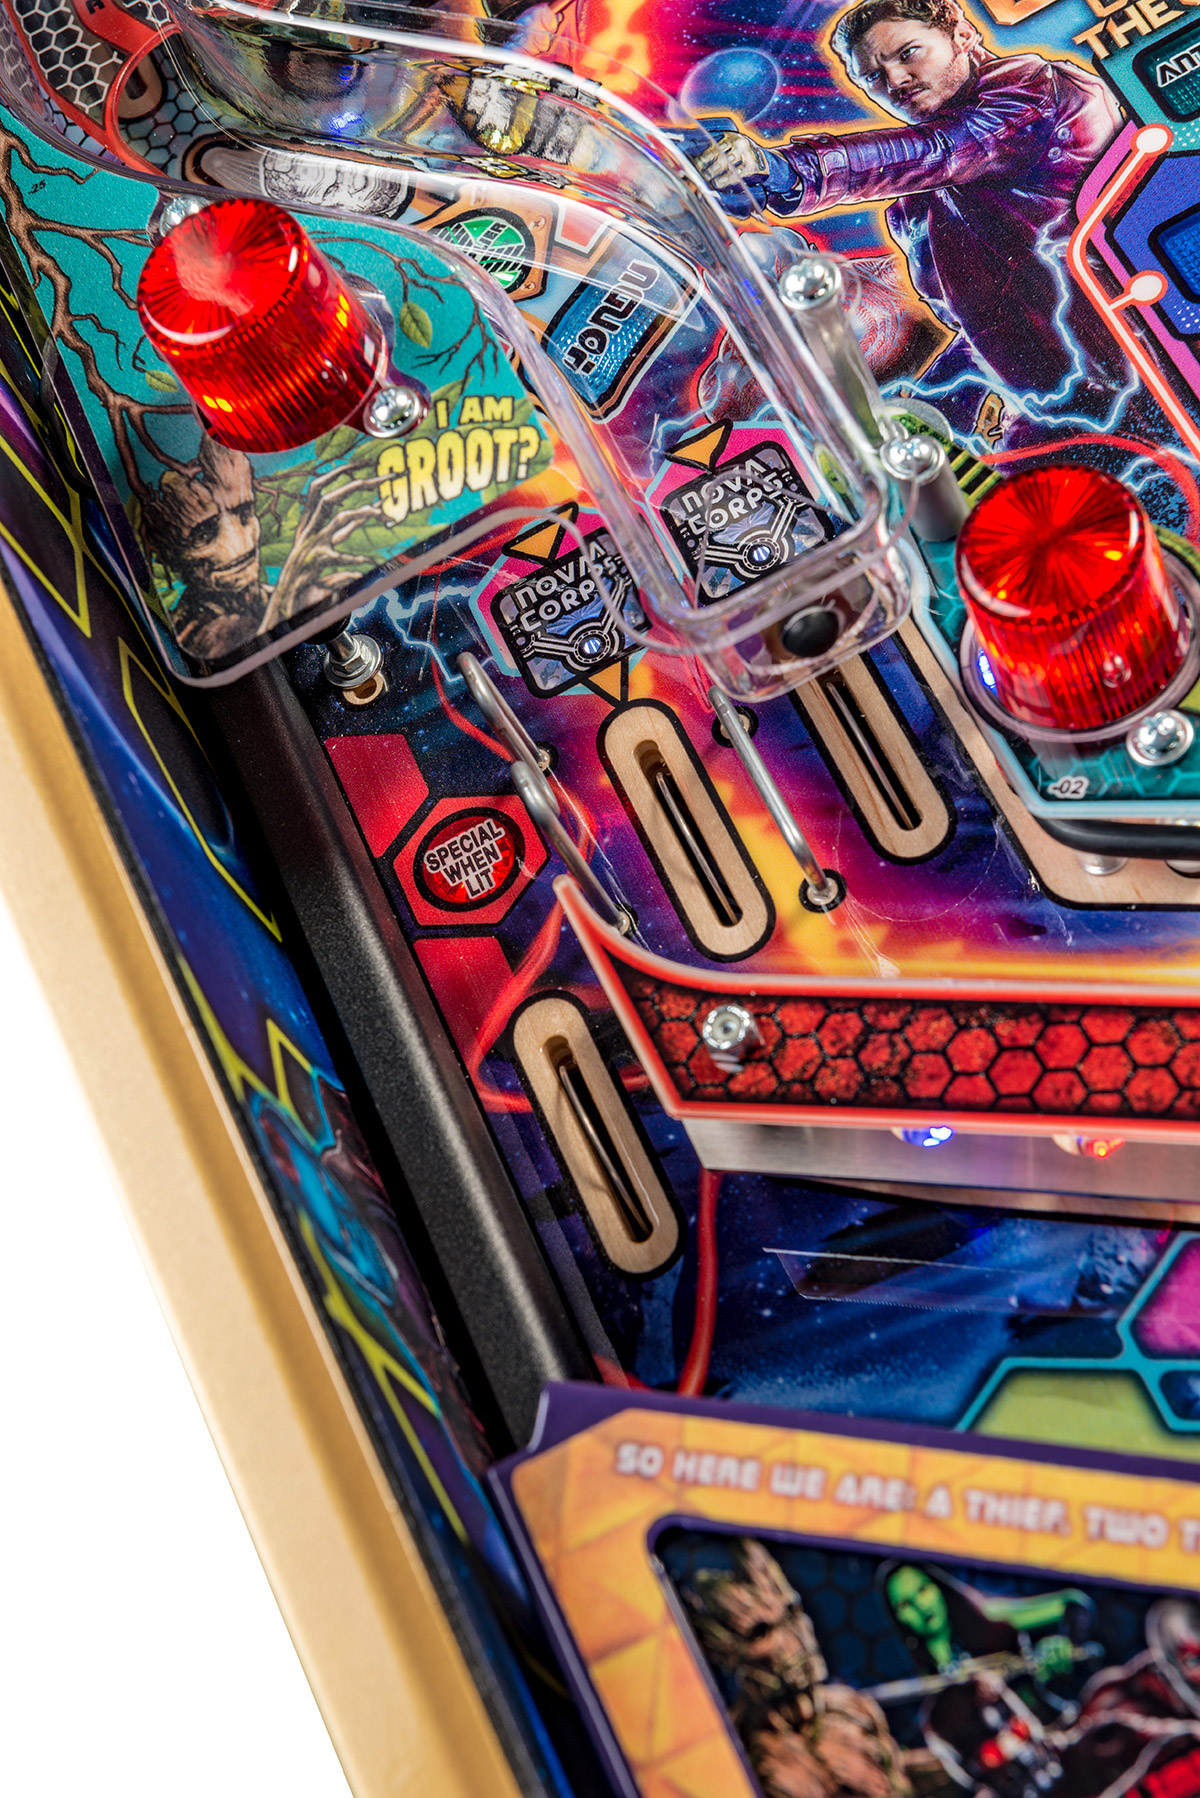 GUARDIANS OF THE GALAXY REVEALED – Welcome to Pinball News